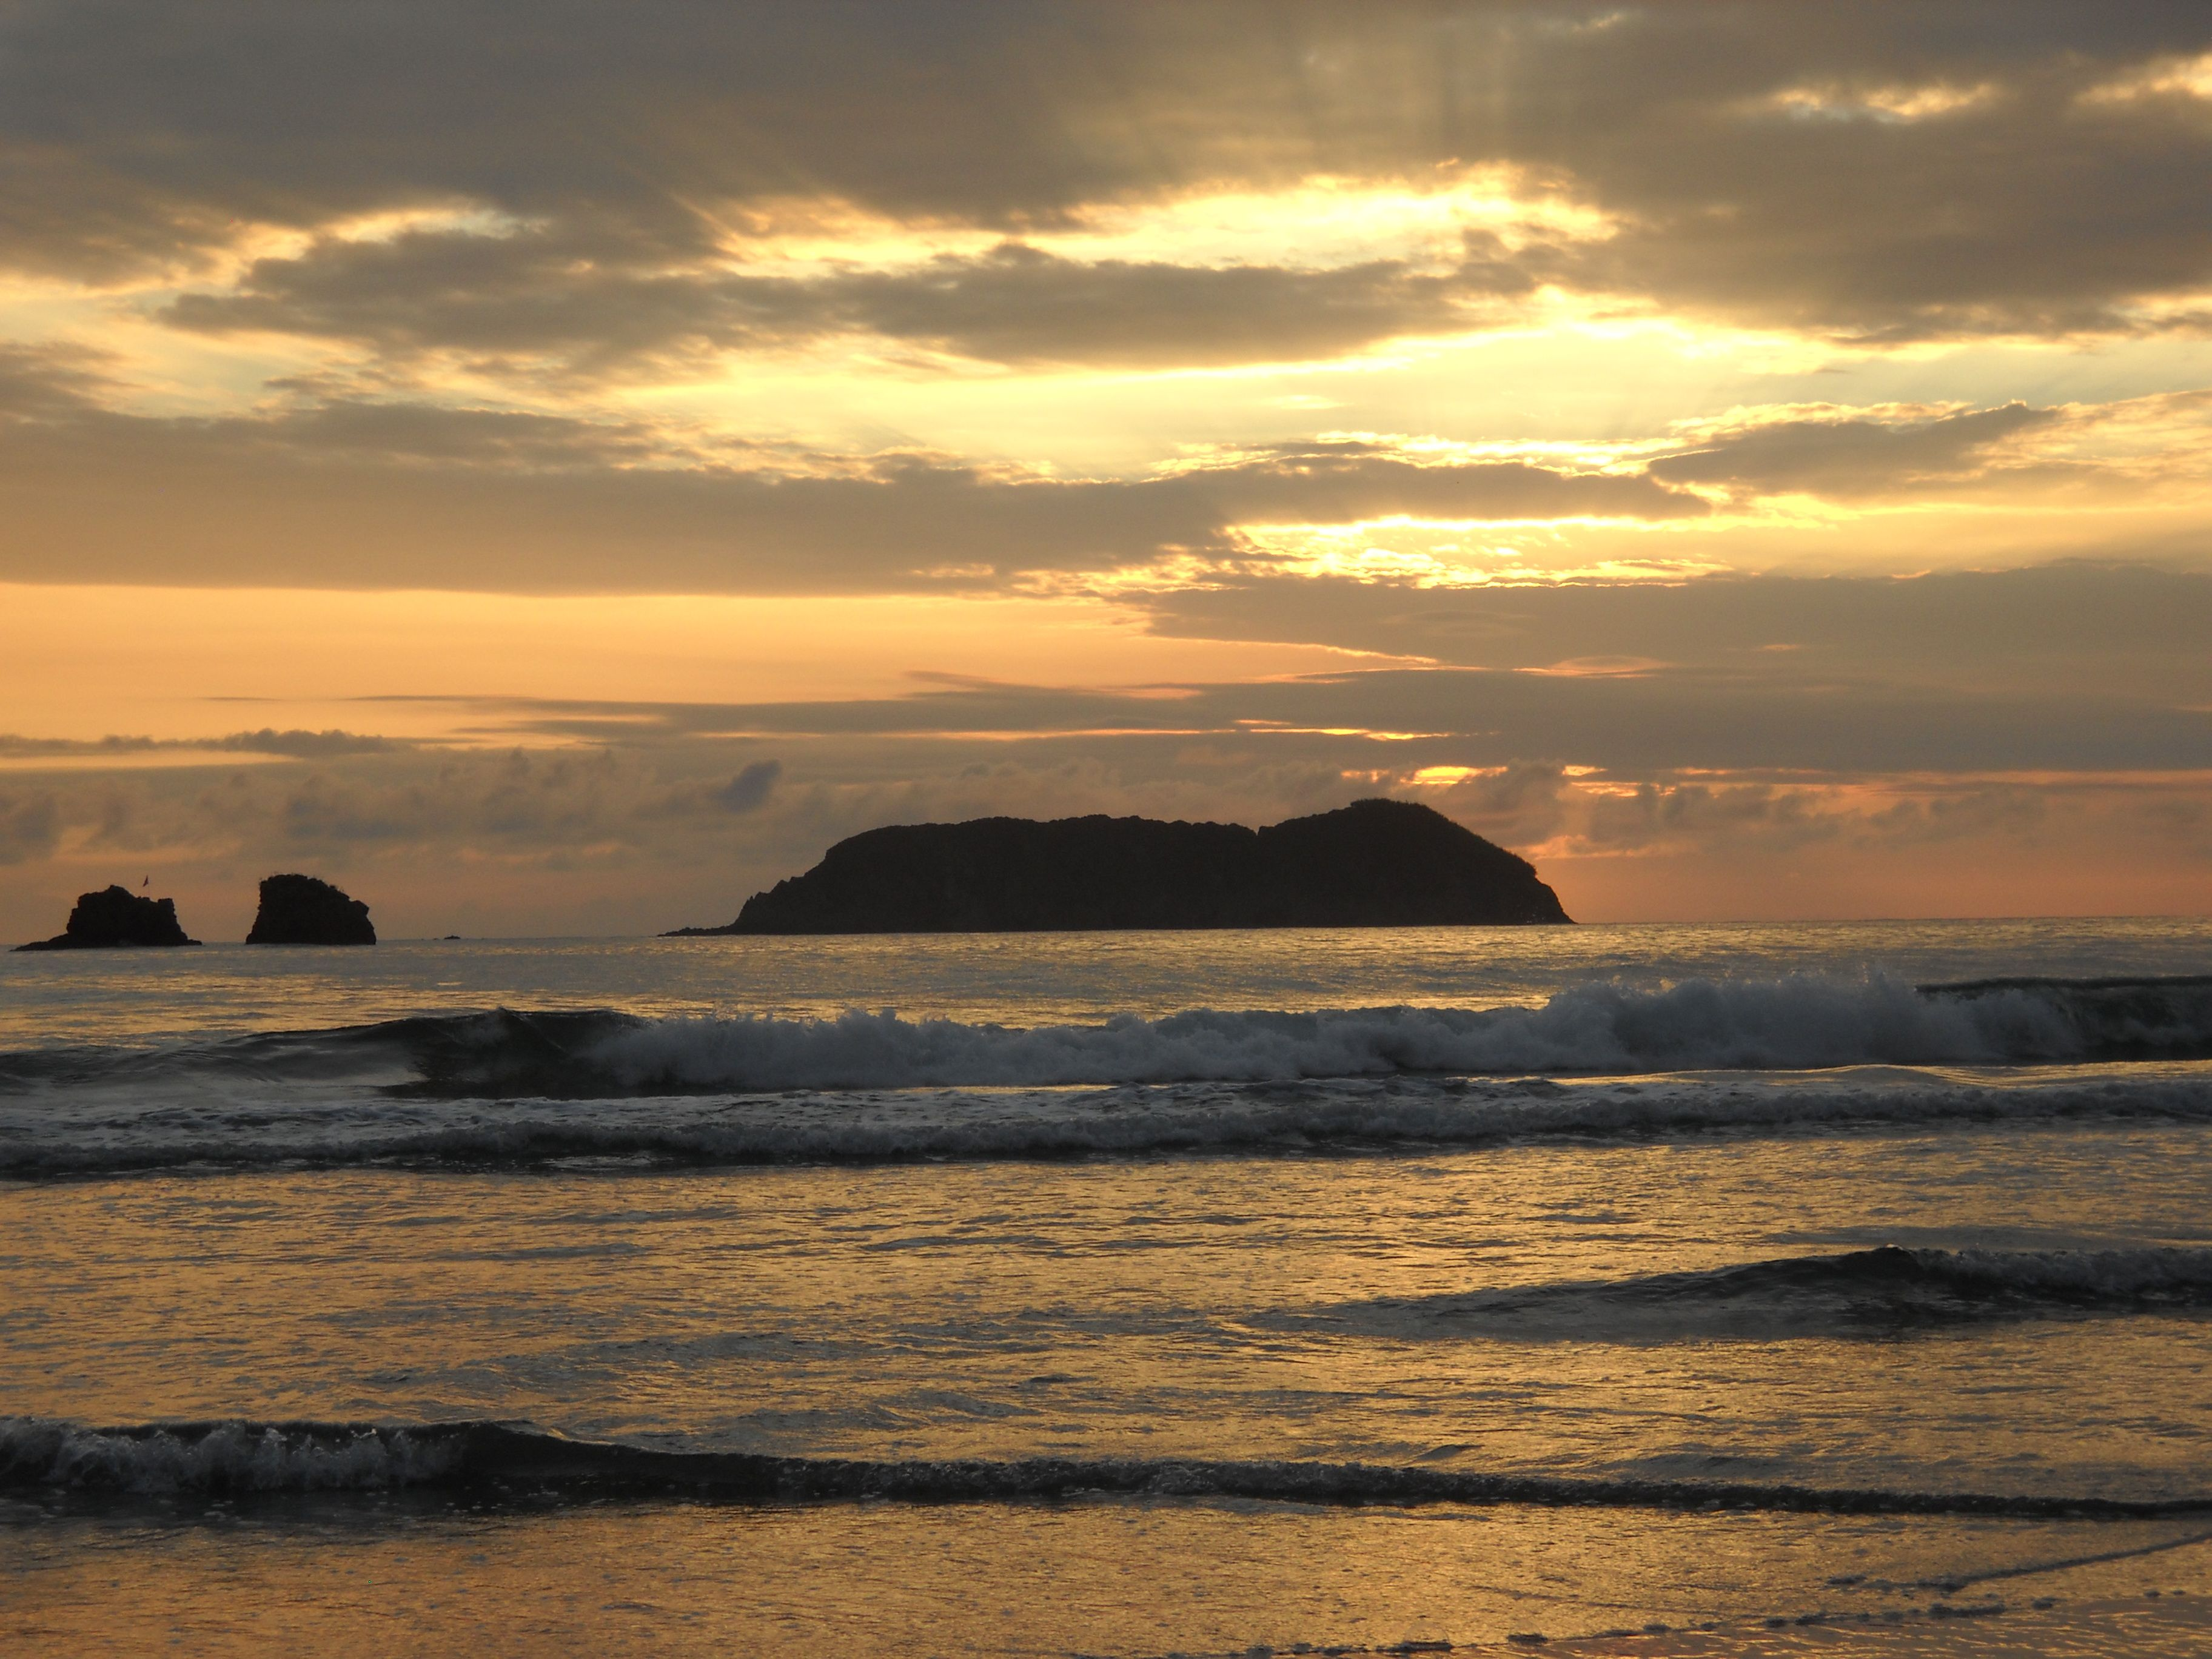 Sunset in Manuel Antonio, Costa Rica. Such an amazing country.